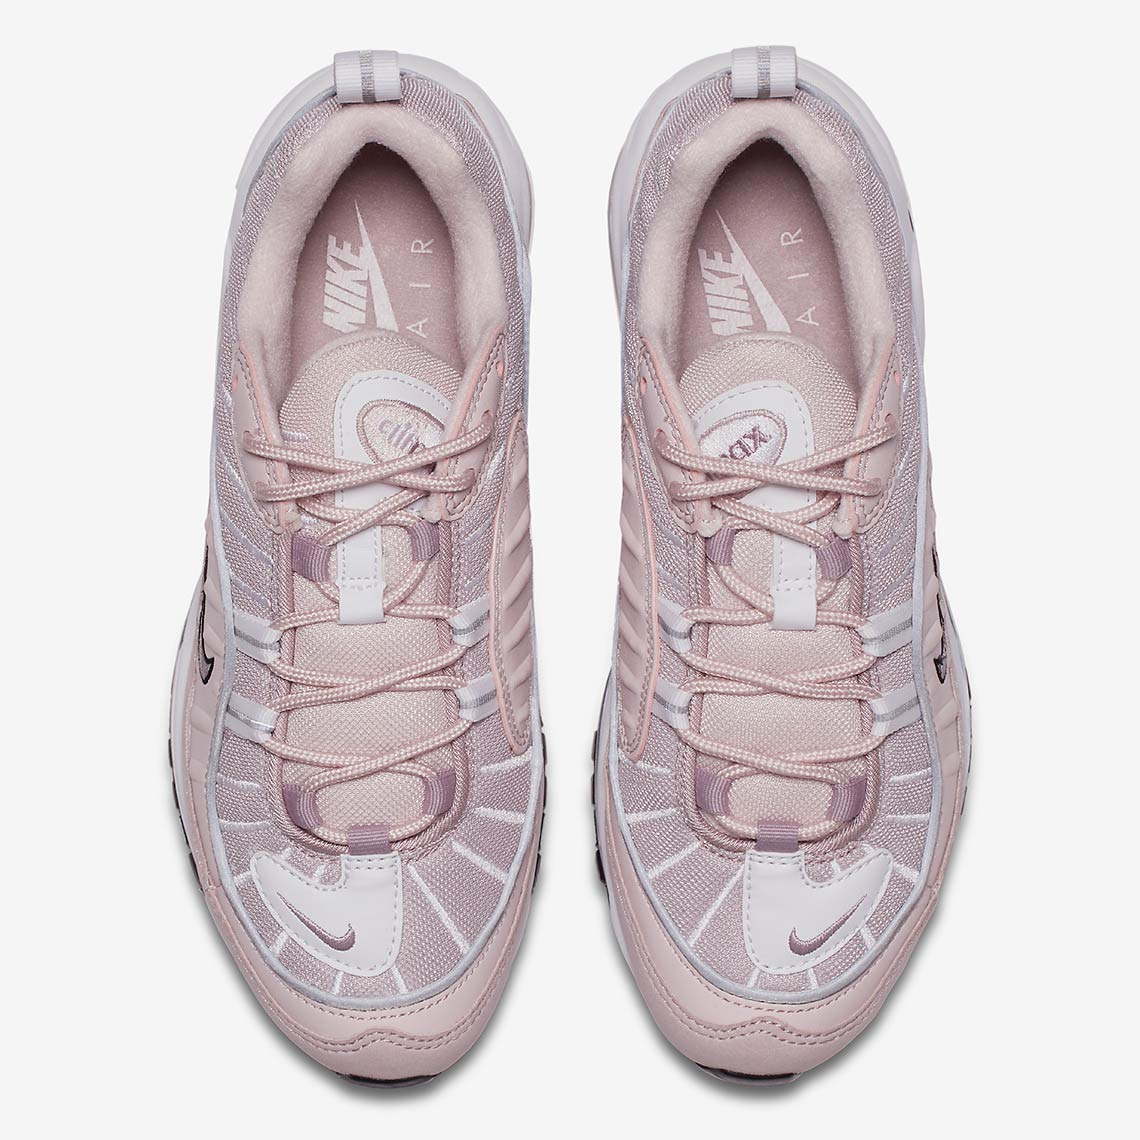 new arrival 94217 d0a97 Pink Leads the Way with the Nike Air Max 98 Barely Rose - The Drop Date